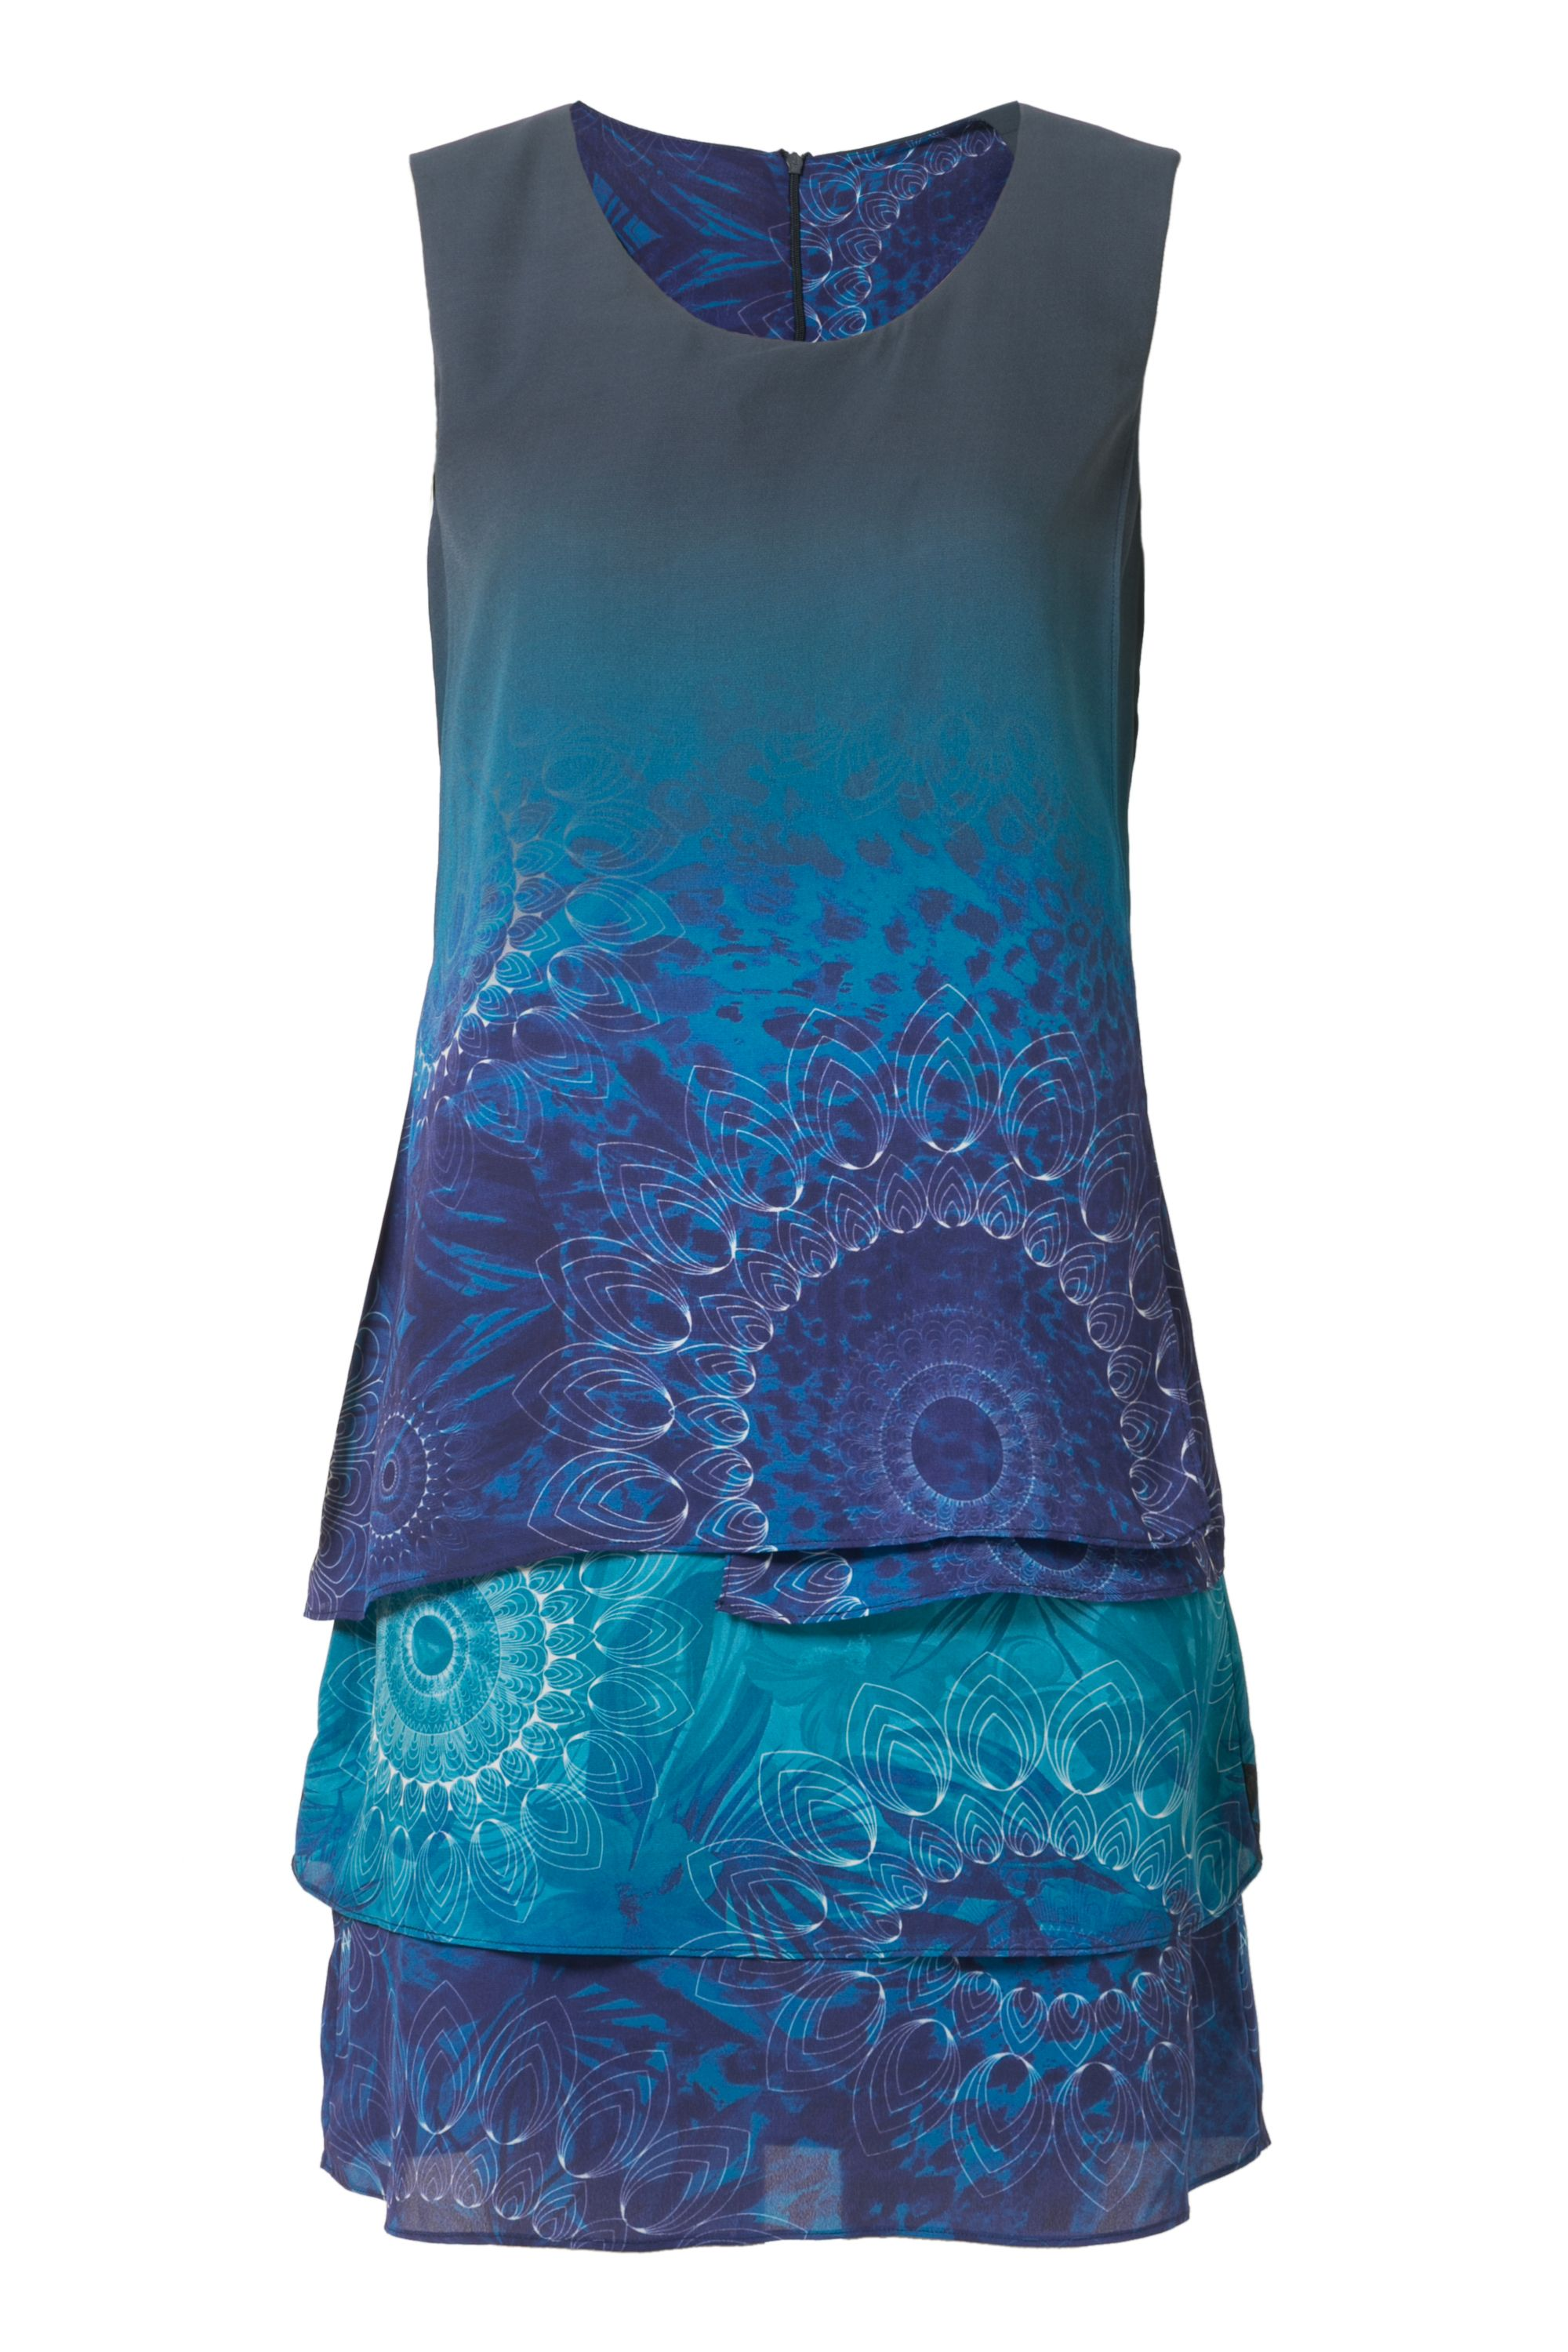 Desigual Capas Neko Dress, Blue